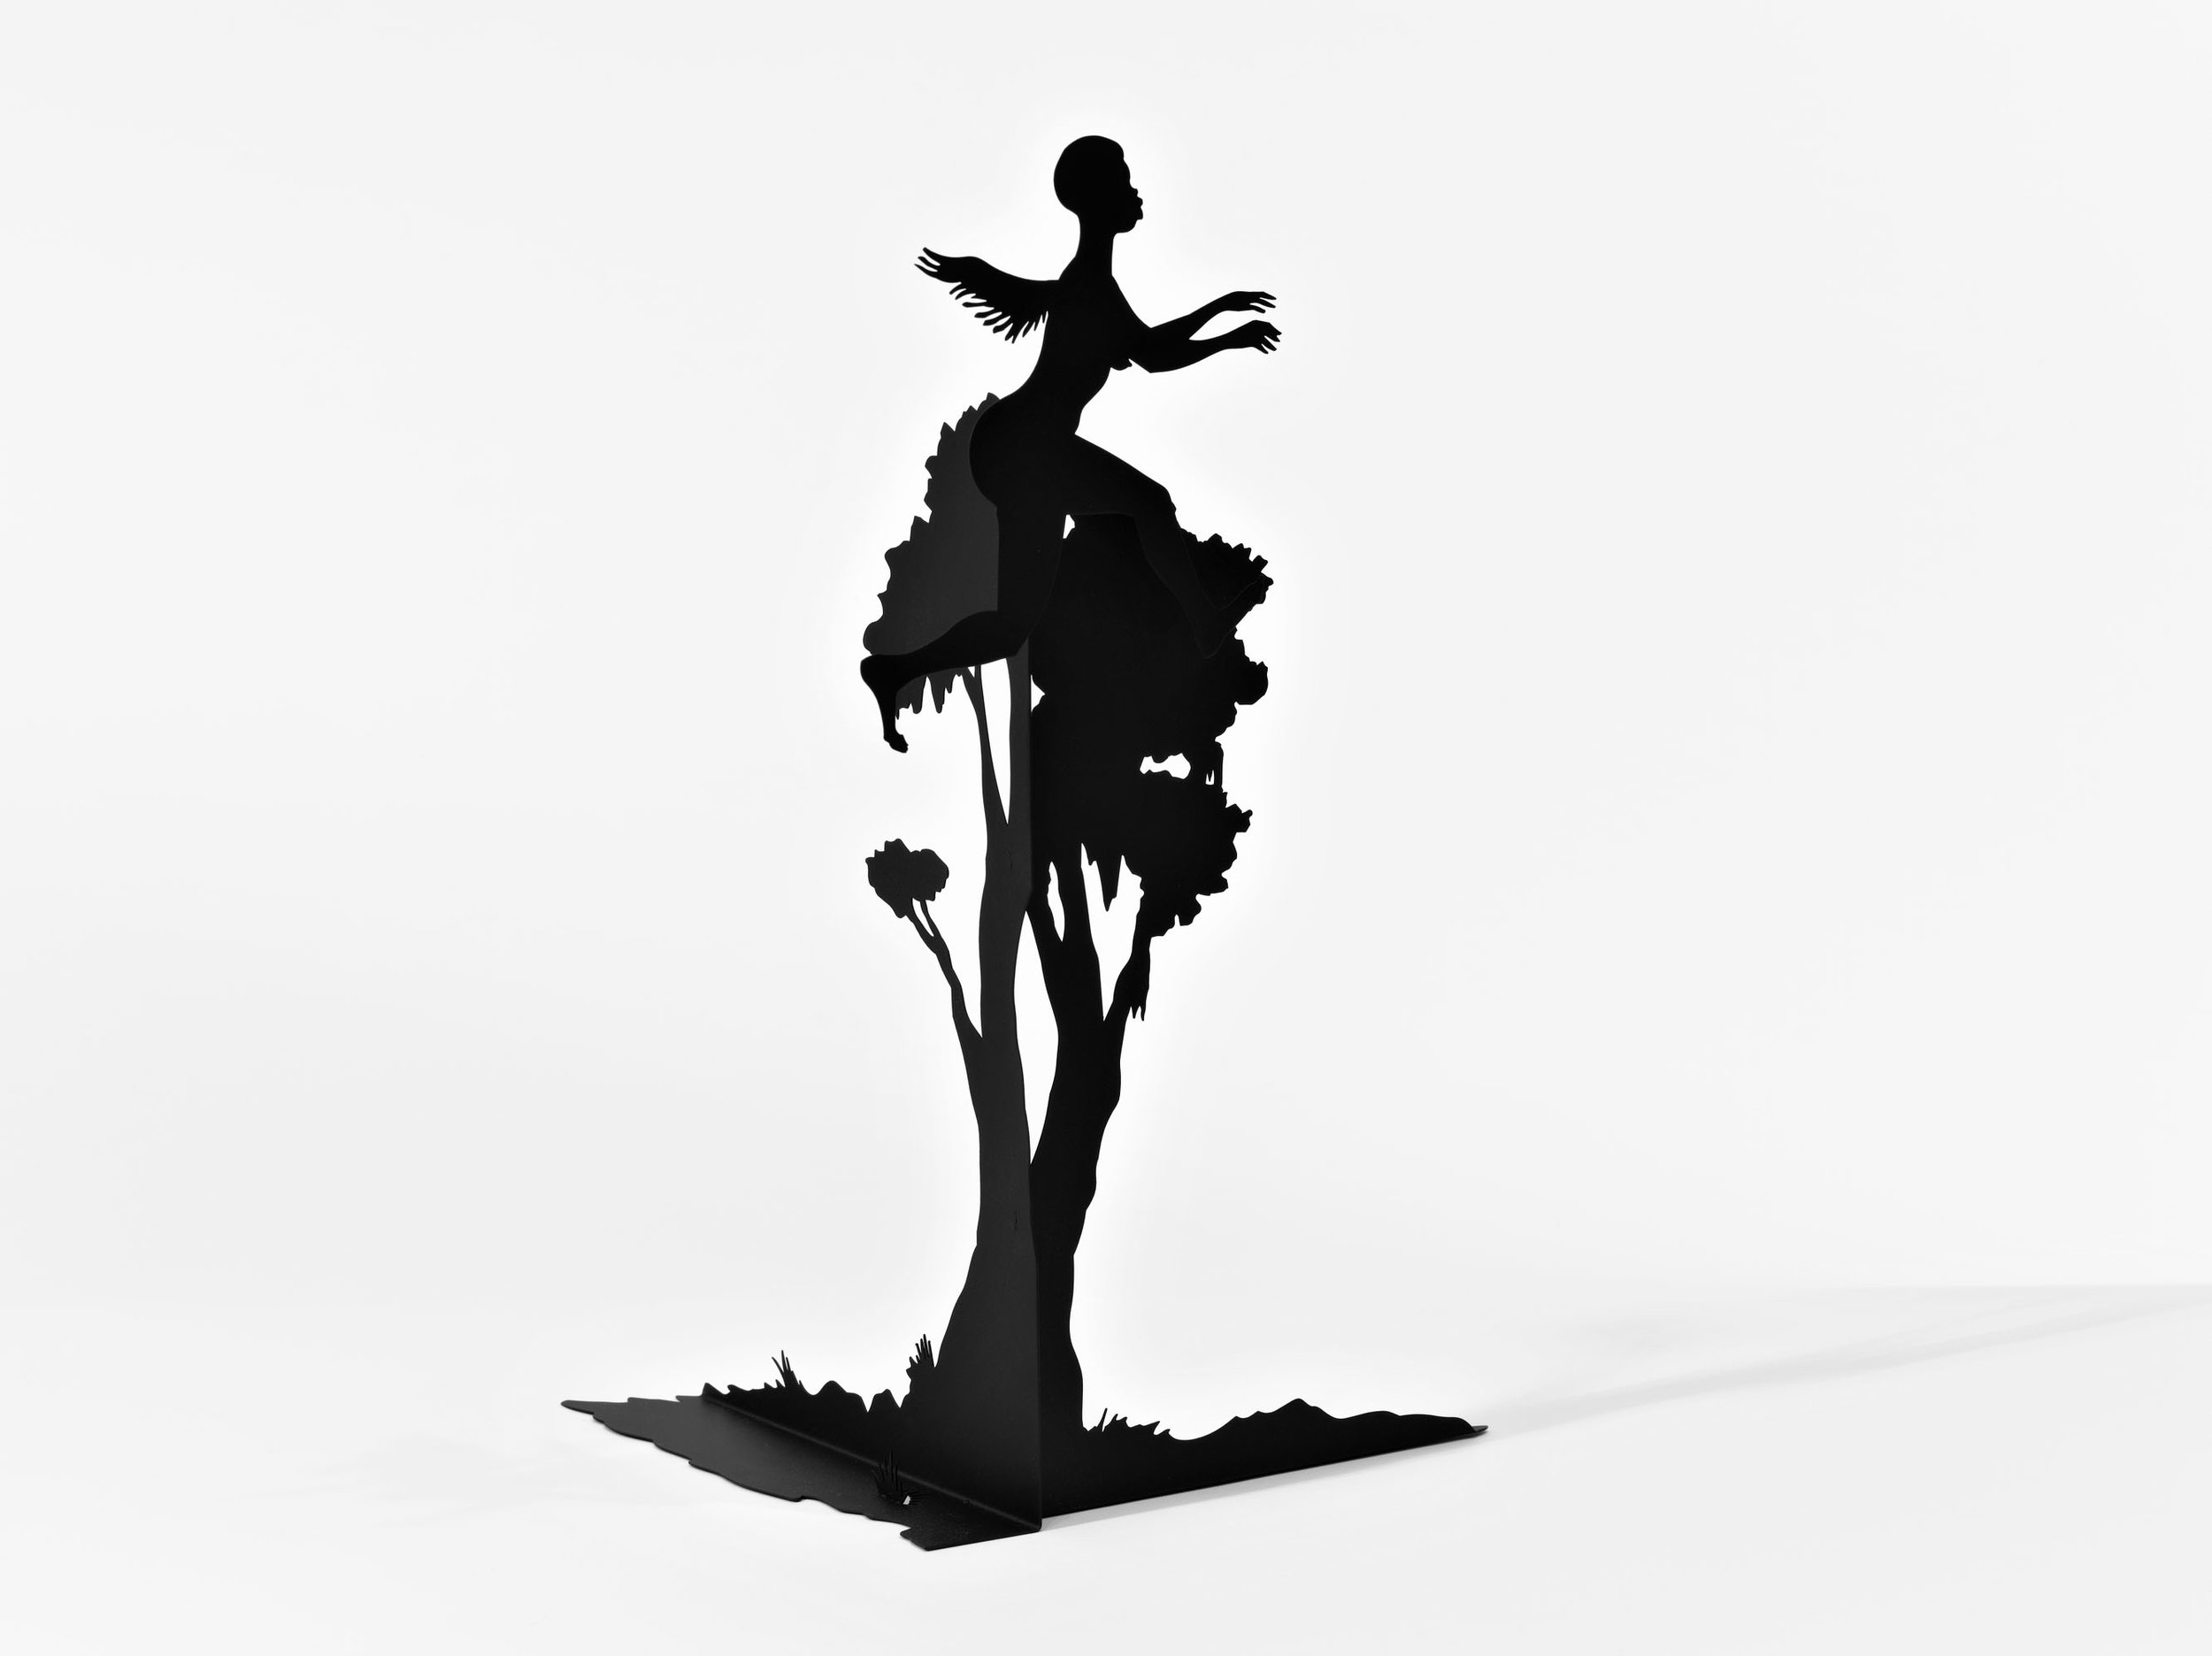 """""""Detail,"""" Burning African Village Play Set with Big House and Lynching, 2006. Painted laser cut steel, 22 parts, dimensions variable  © Kara Walker. Image courtesy of Sikkema Jenkin & Co., New York."""